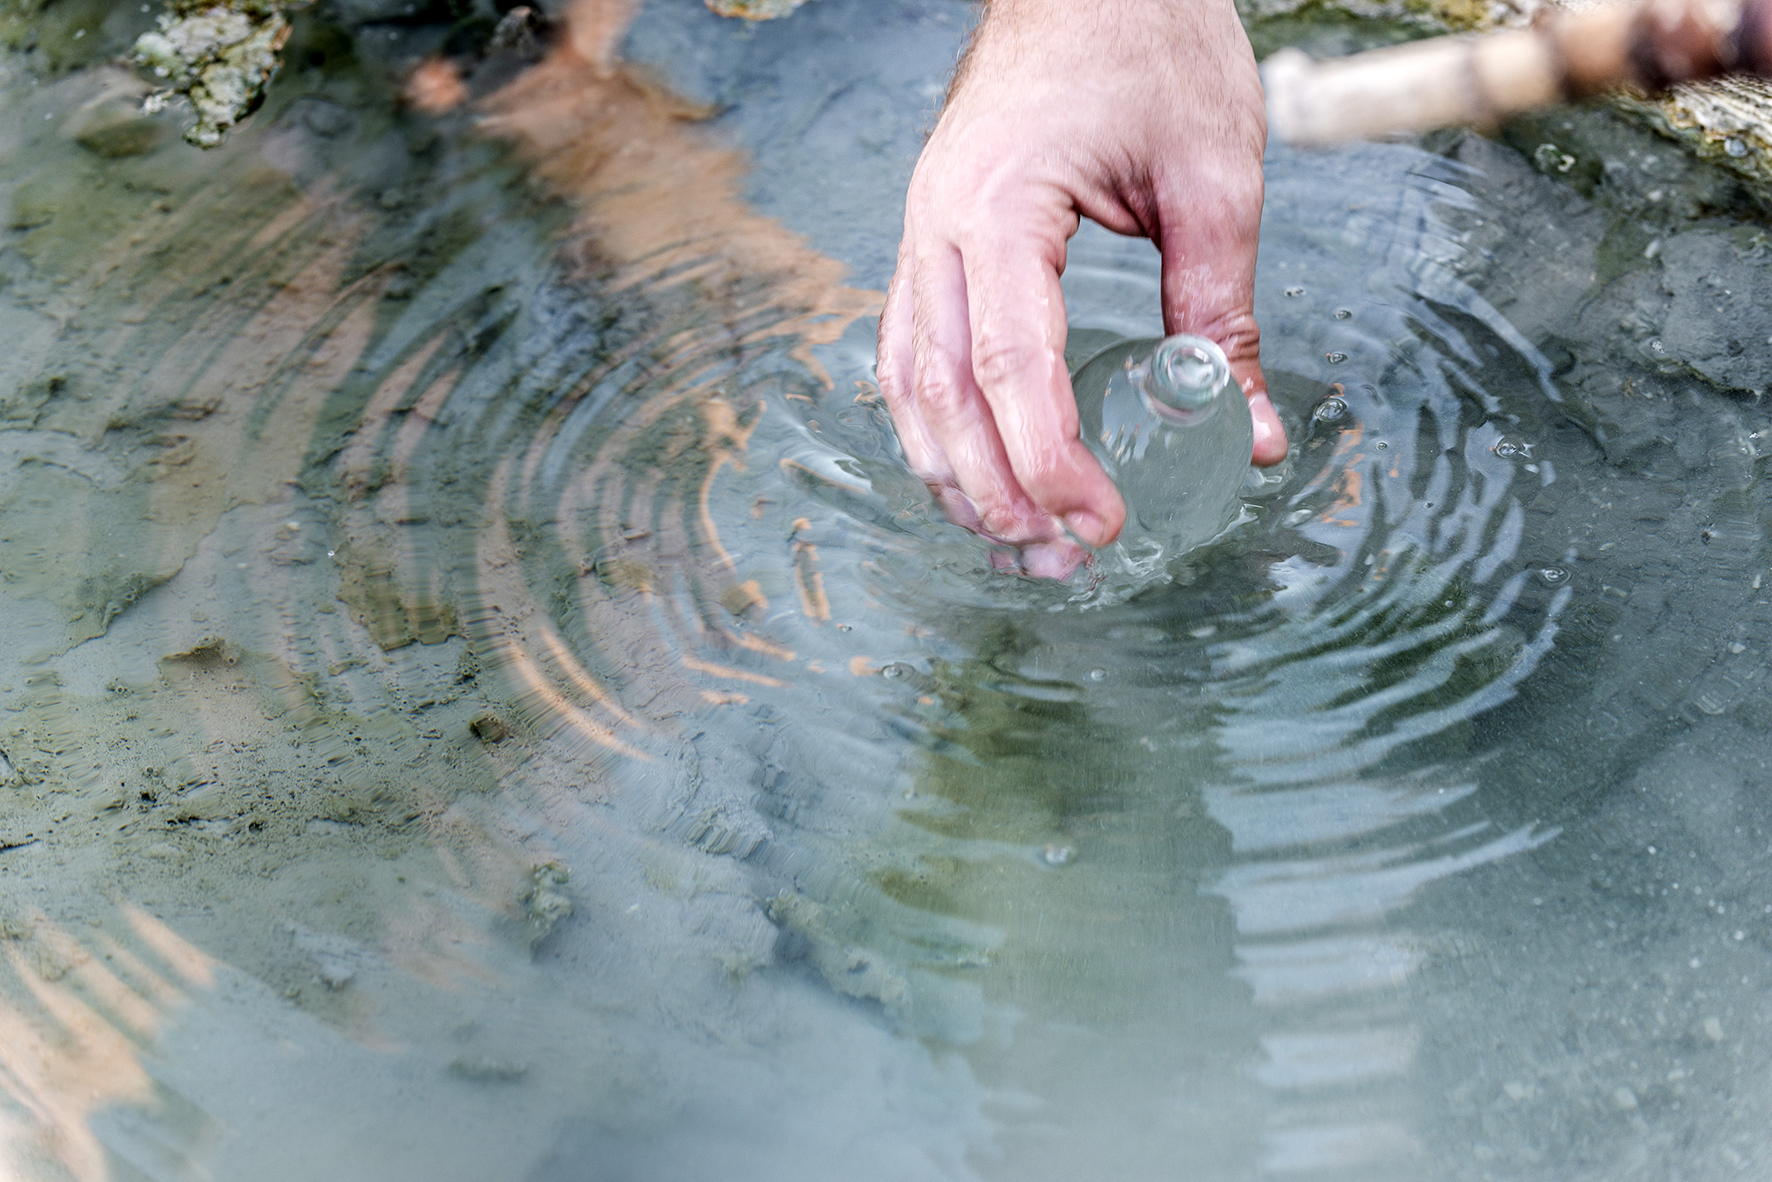 File:Water resources, taking a water sample.jpg - Wikipedia